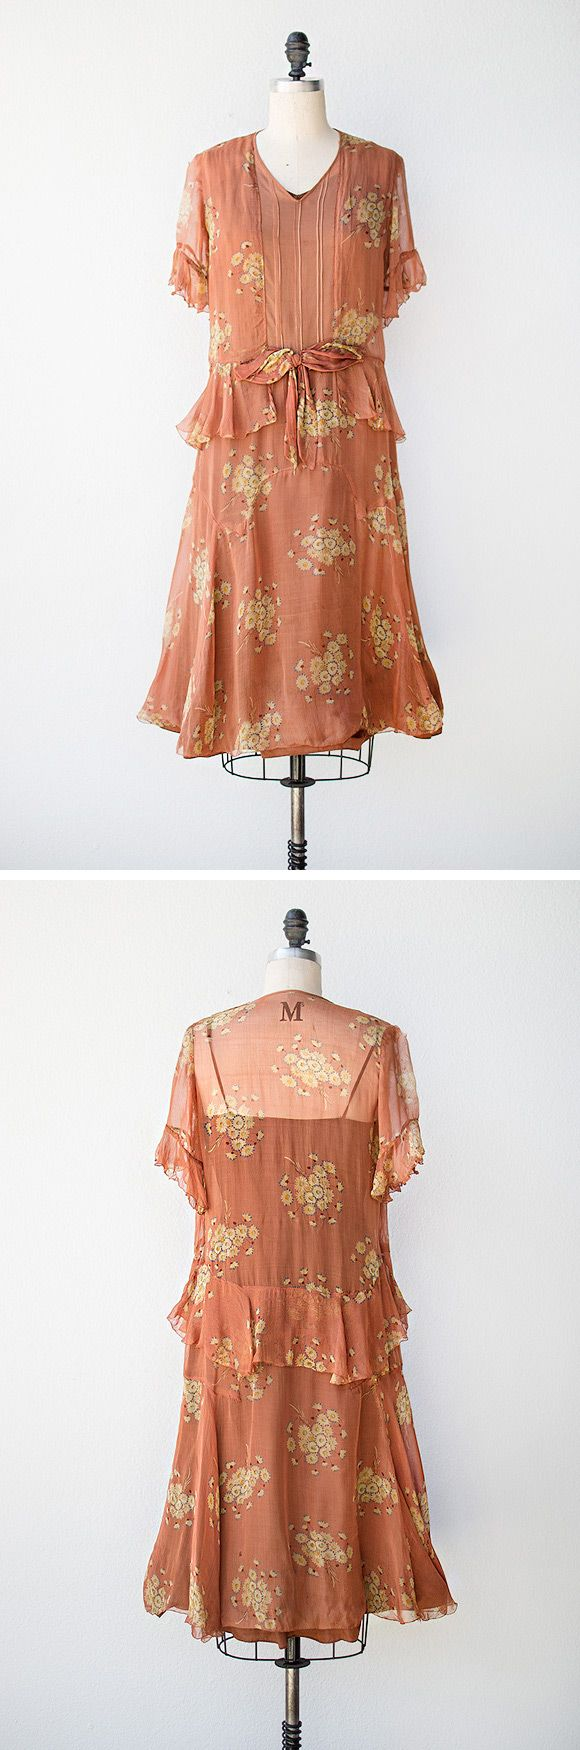 1920s dress made of gauze and is lined with a fabric that feels like silk. The copper colored fabric has a cute floral print. The bodice has a v-neckline, flutter sleeves, and pleating down the center front. A peplum ruffle and bow accentuate the drop waist.